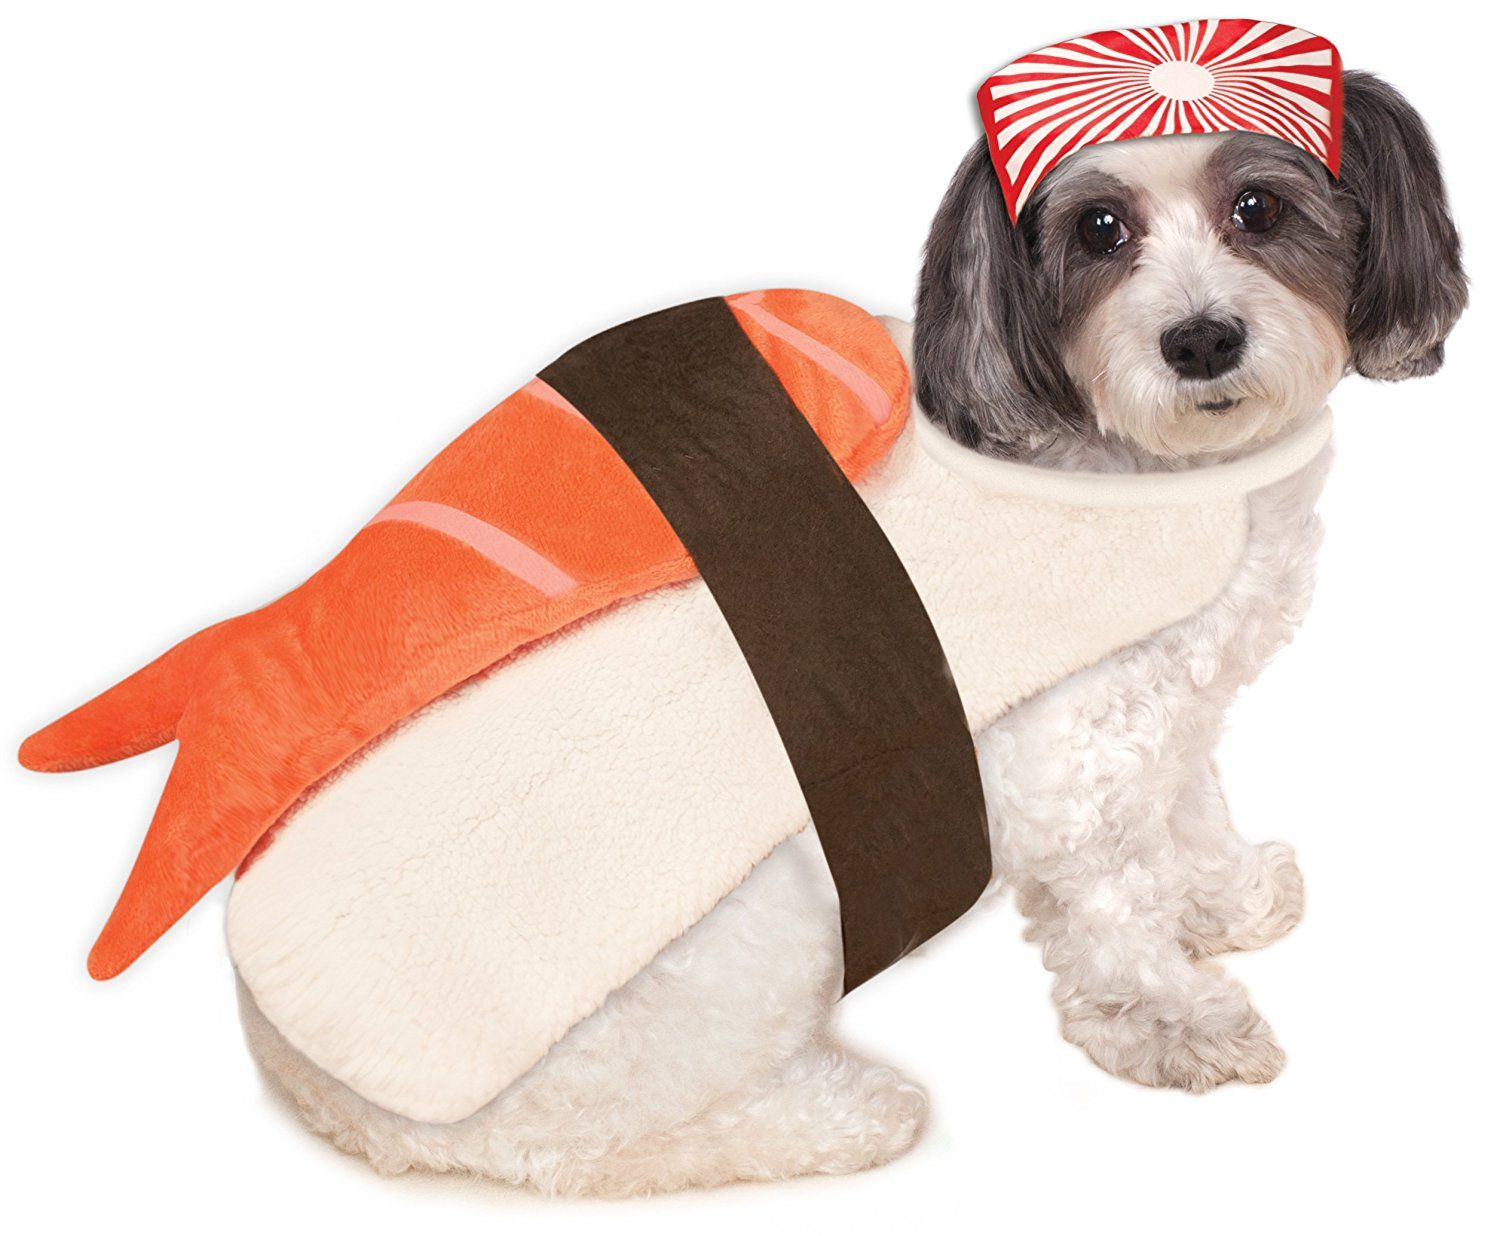 image  sc 1 st  Delish.com & 20+ Cute Dog Halloween Costumes - Food Inspired Costume Ideas for ...